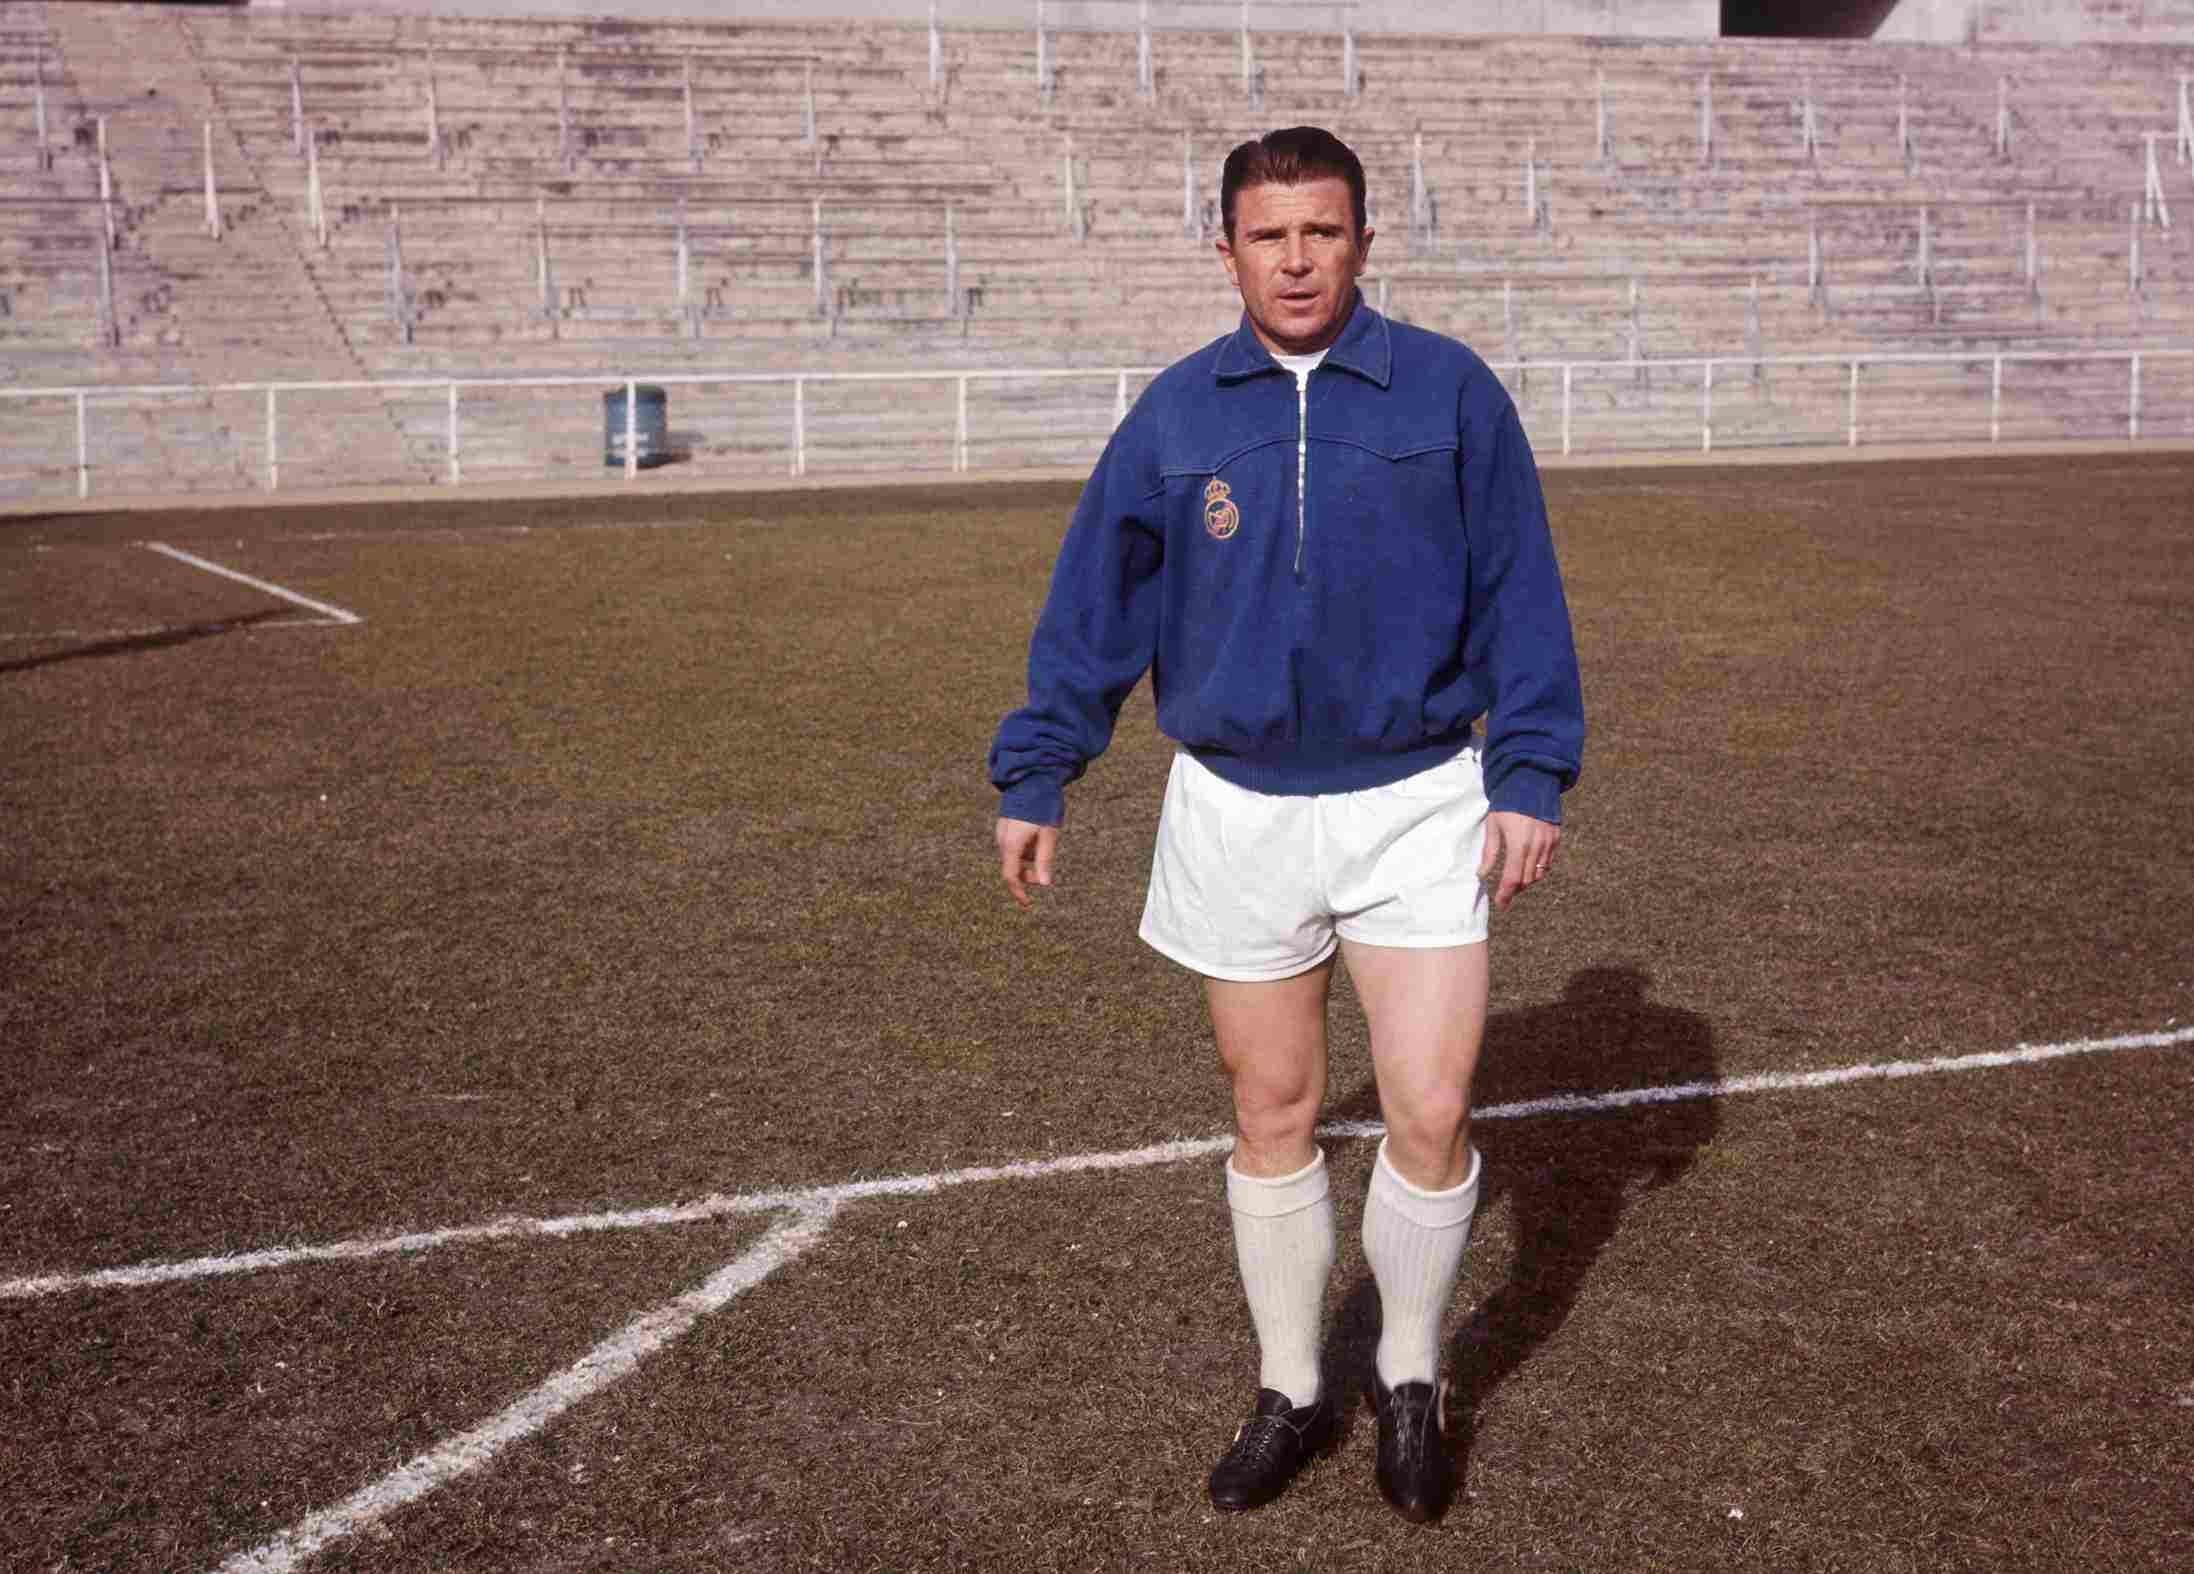 Portrait of Ferenc Puskas, soccer player of Real Madrid.